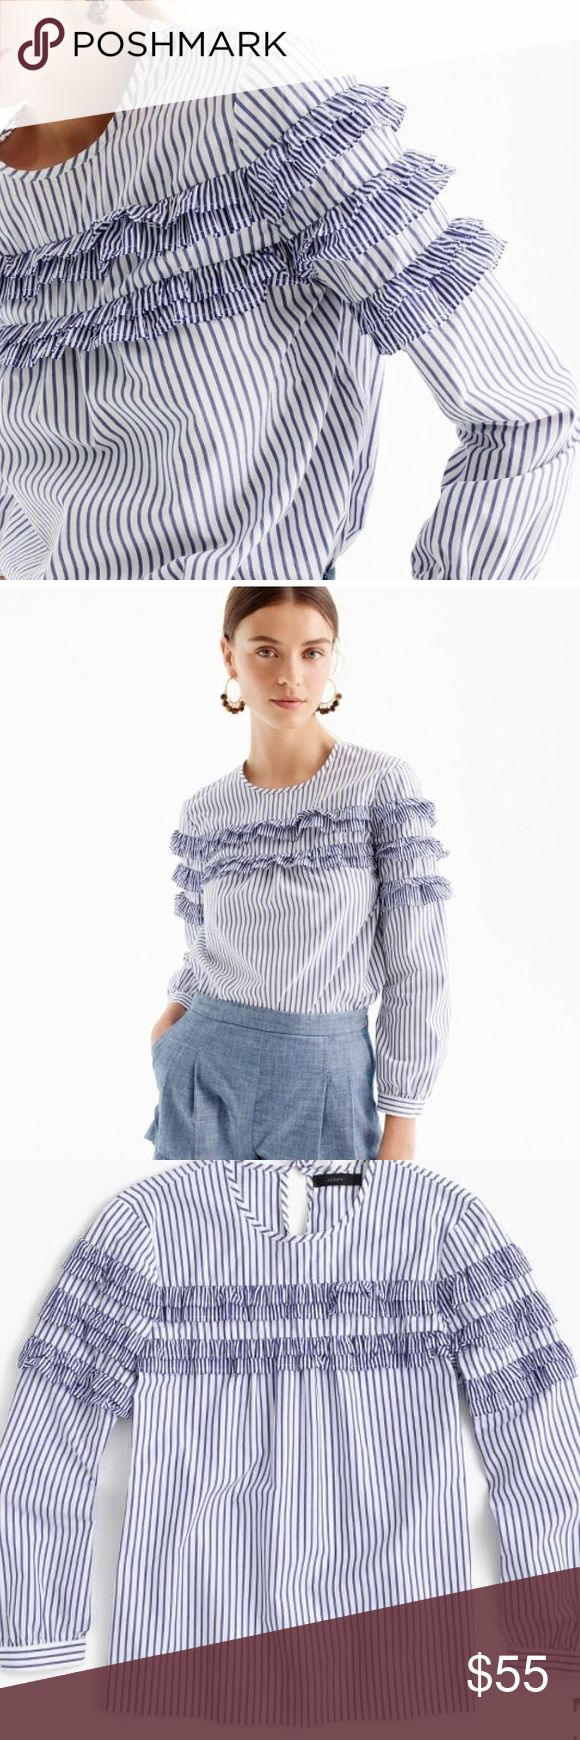 "J.Crew tiered top in mixed stripe Body length: 26 1/2"". Size is 8 tall.  A fresh take on shirting stripes, in a feminine silhouette that we love for work and weekends.  Cotton. Bracelet sleeves. Machine wash. J. Crew Tops Blouses"